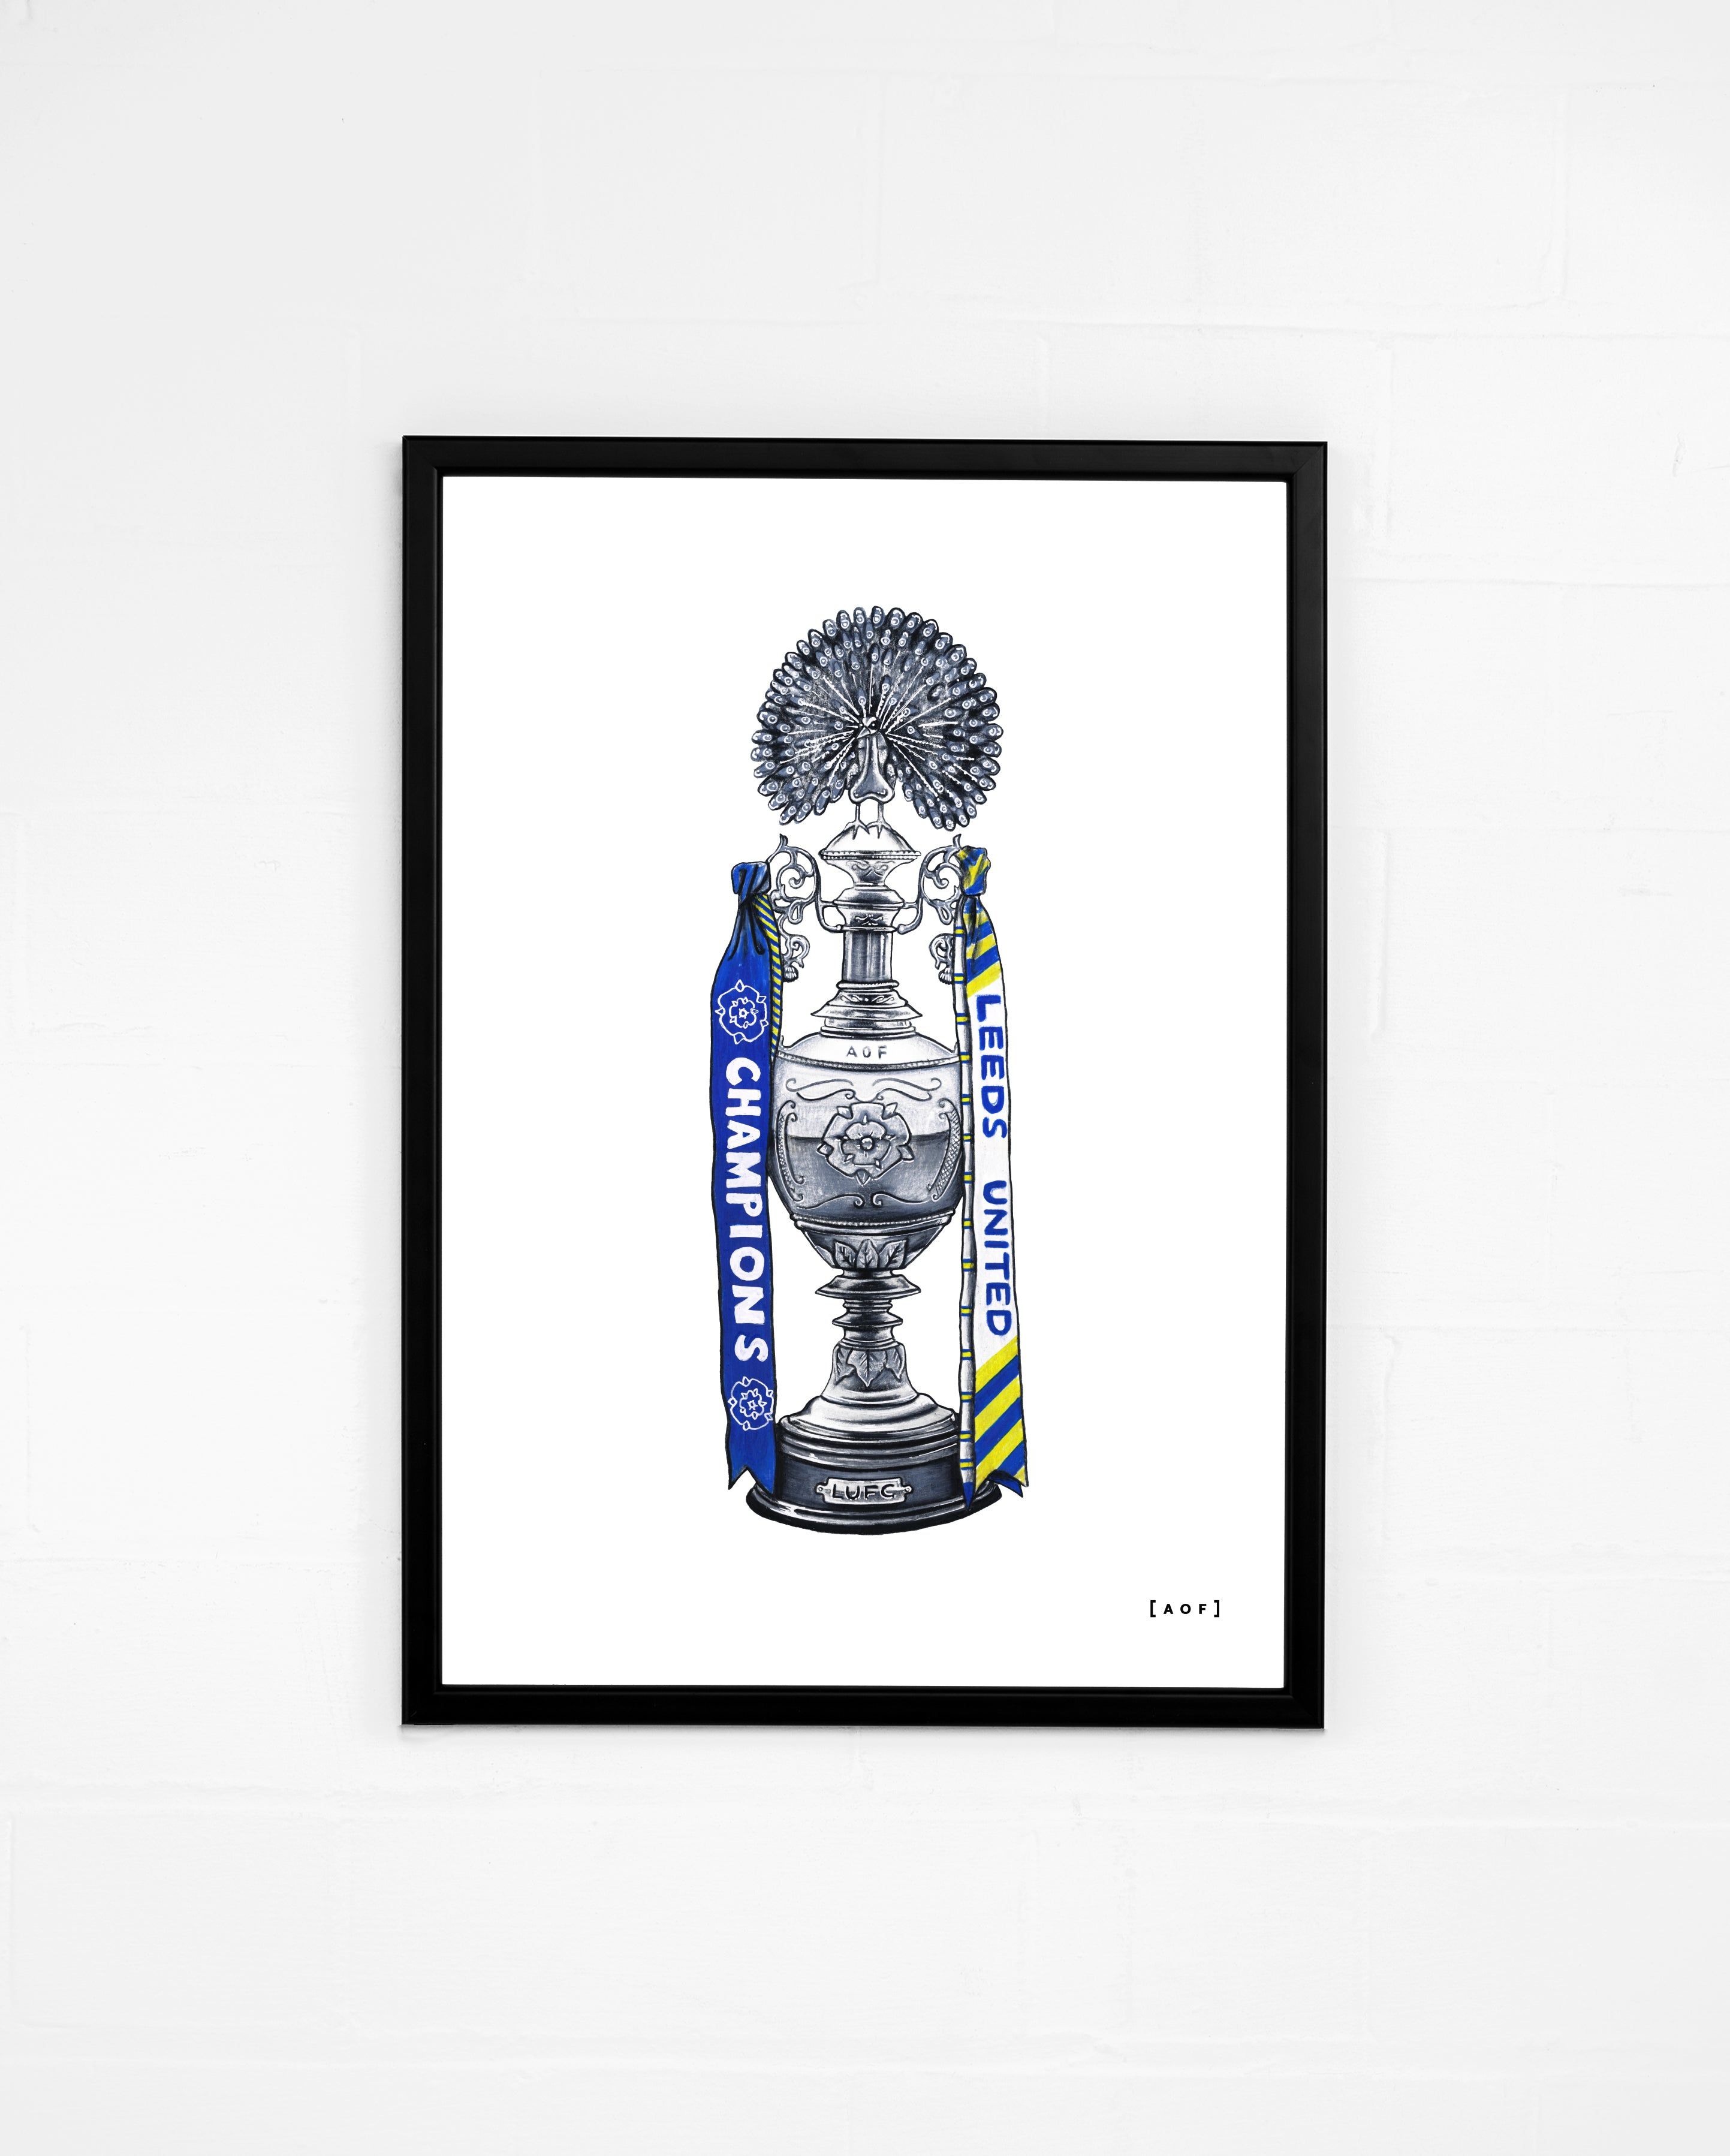 We Are The Champions (LUFC) - Print or Canvas